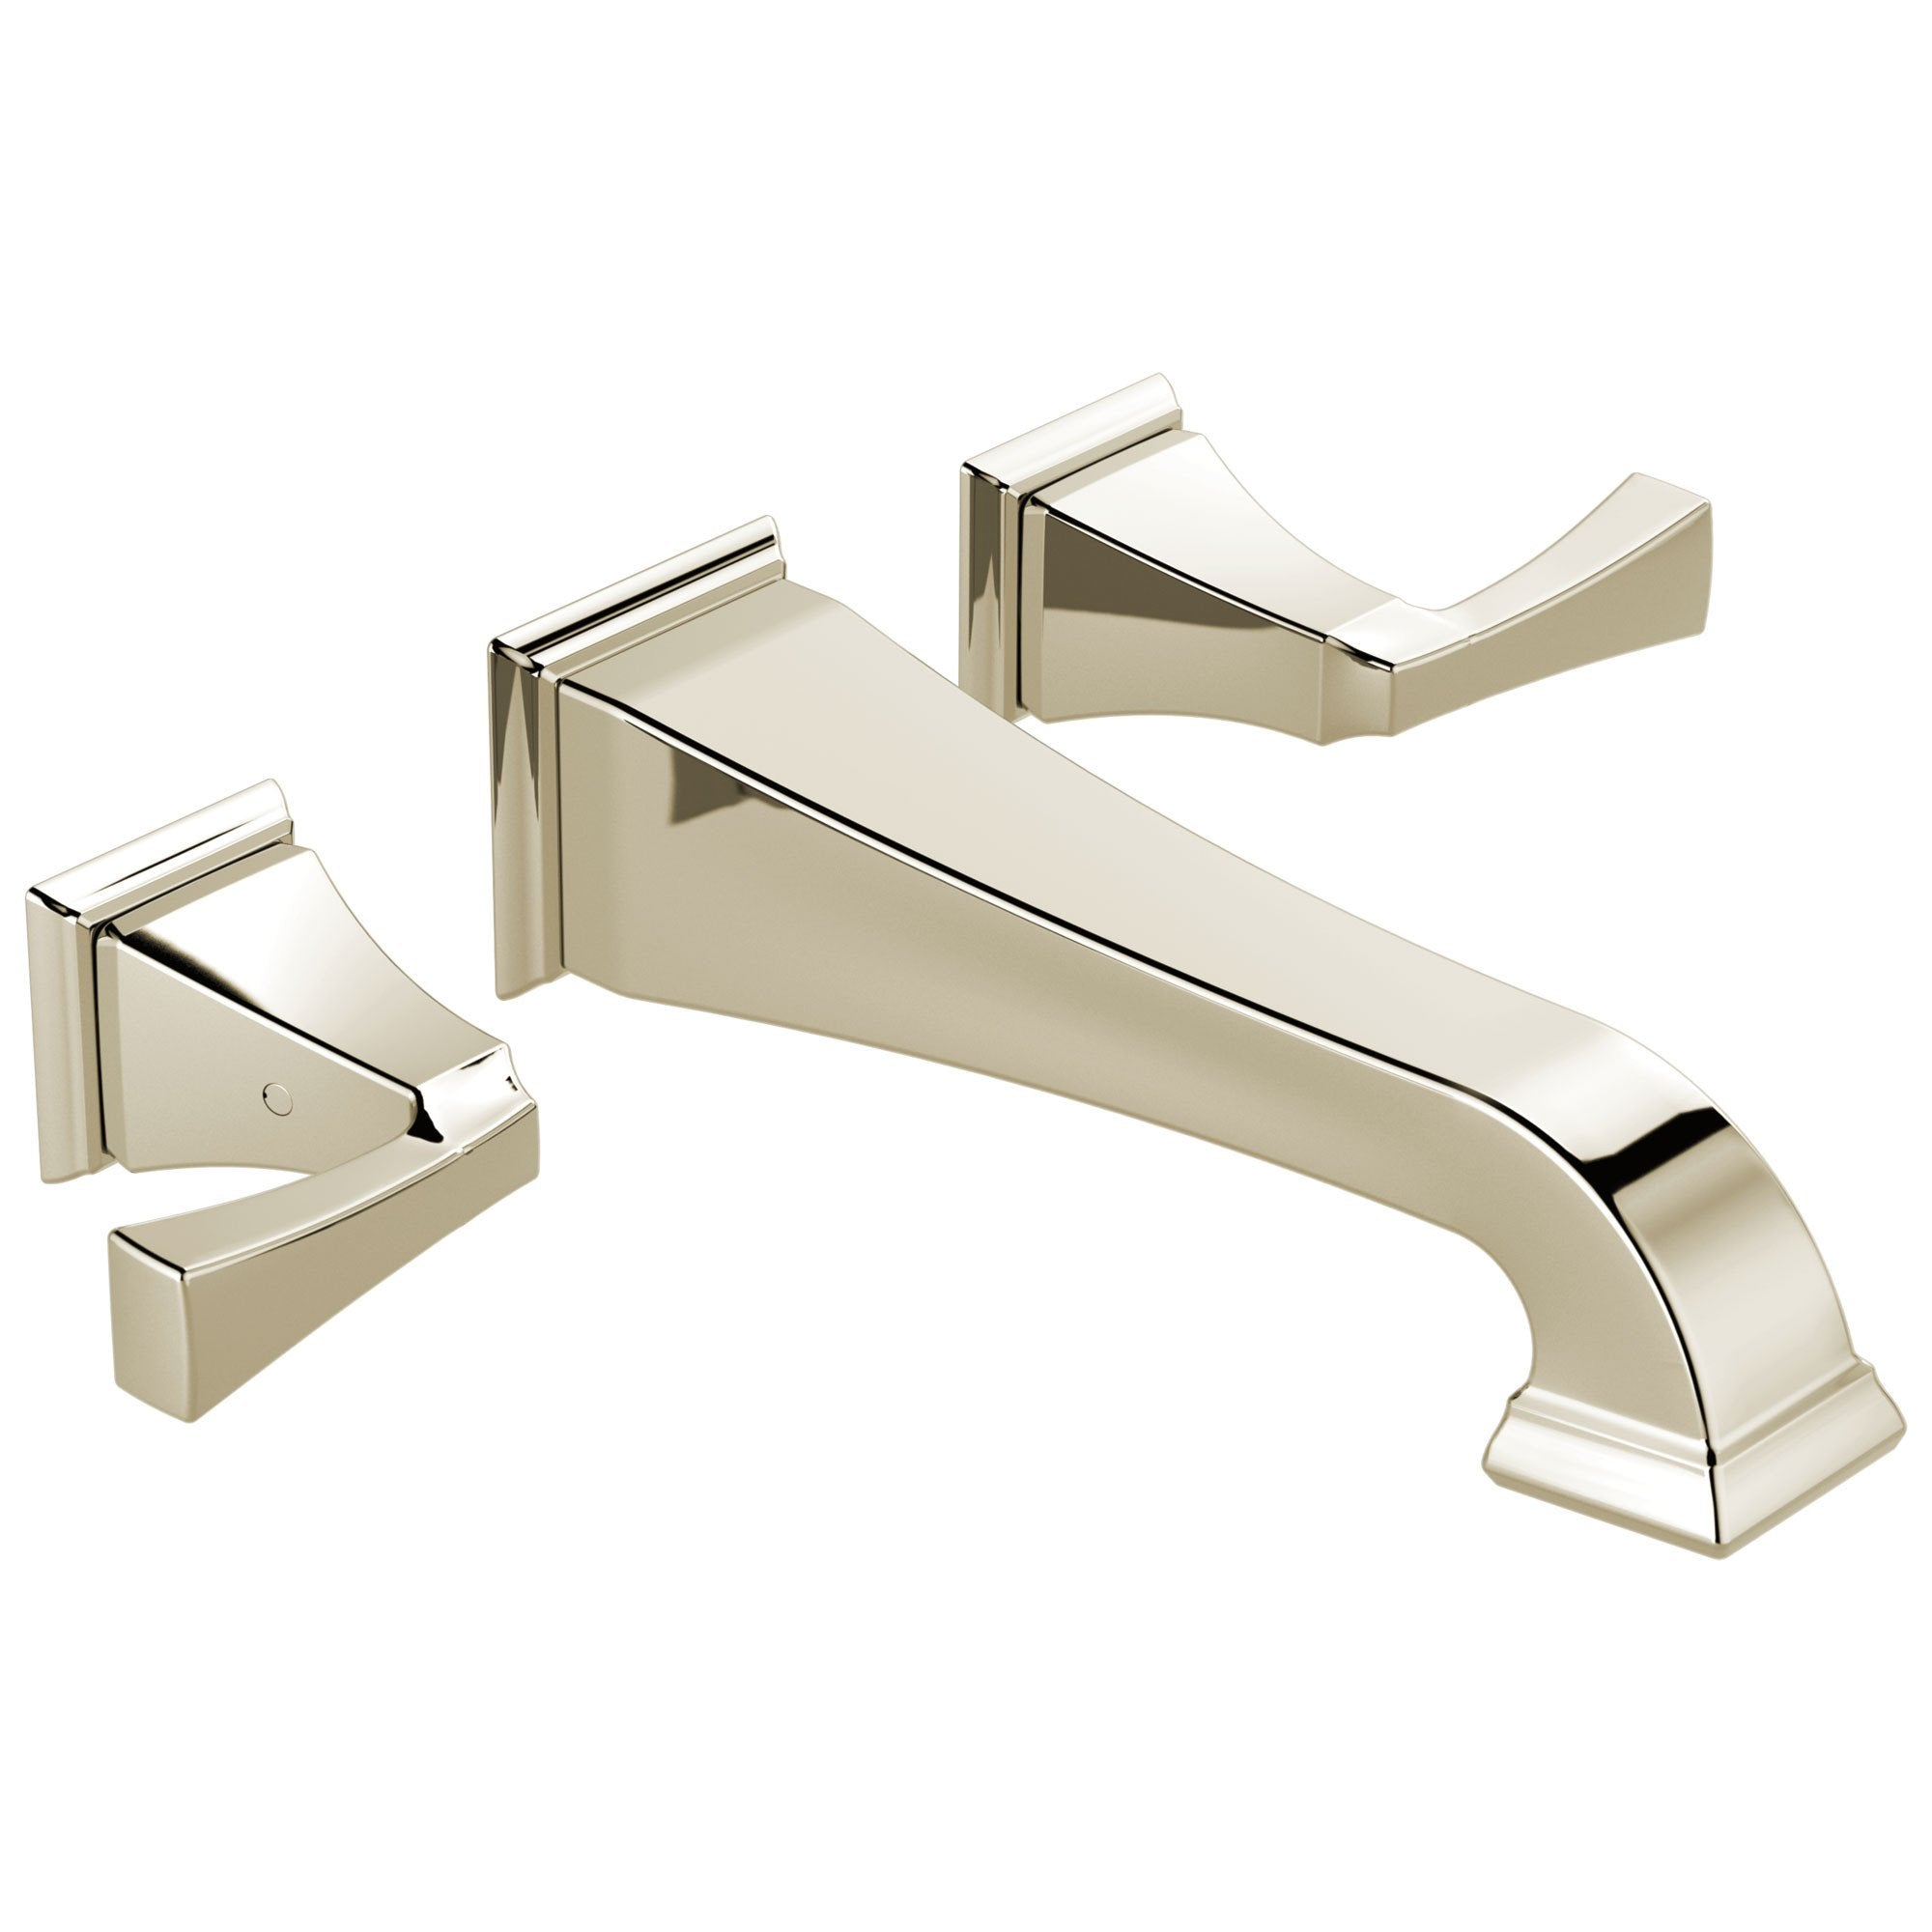 Delta Dryden Collection Polished Nickel Finish Two Handle Wall Mounted Bathroom Sink Lavatory Faucet Trim Kit (Requires Rough-in Valve) DT3551LFPNWL